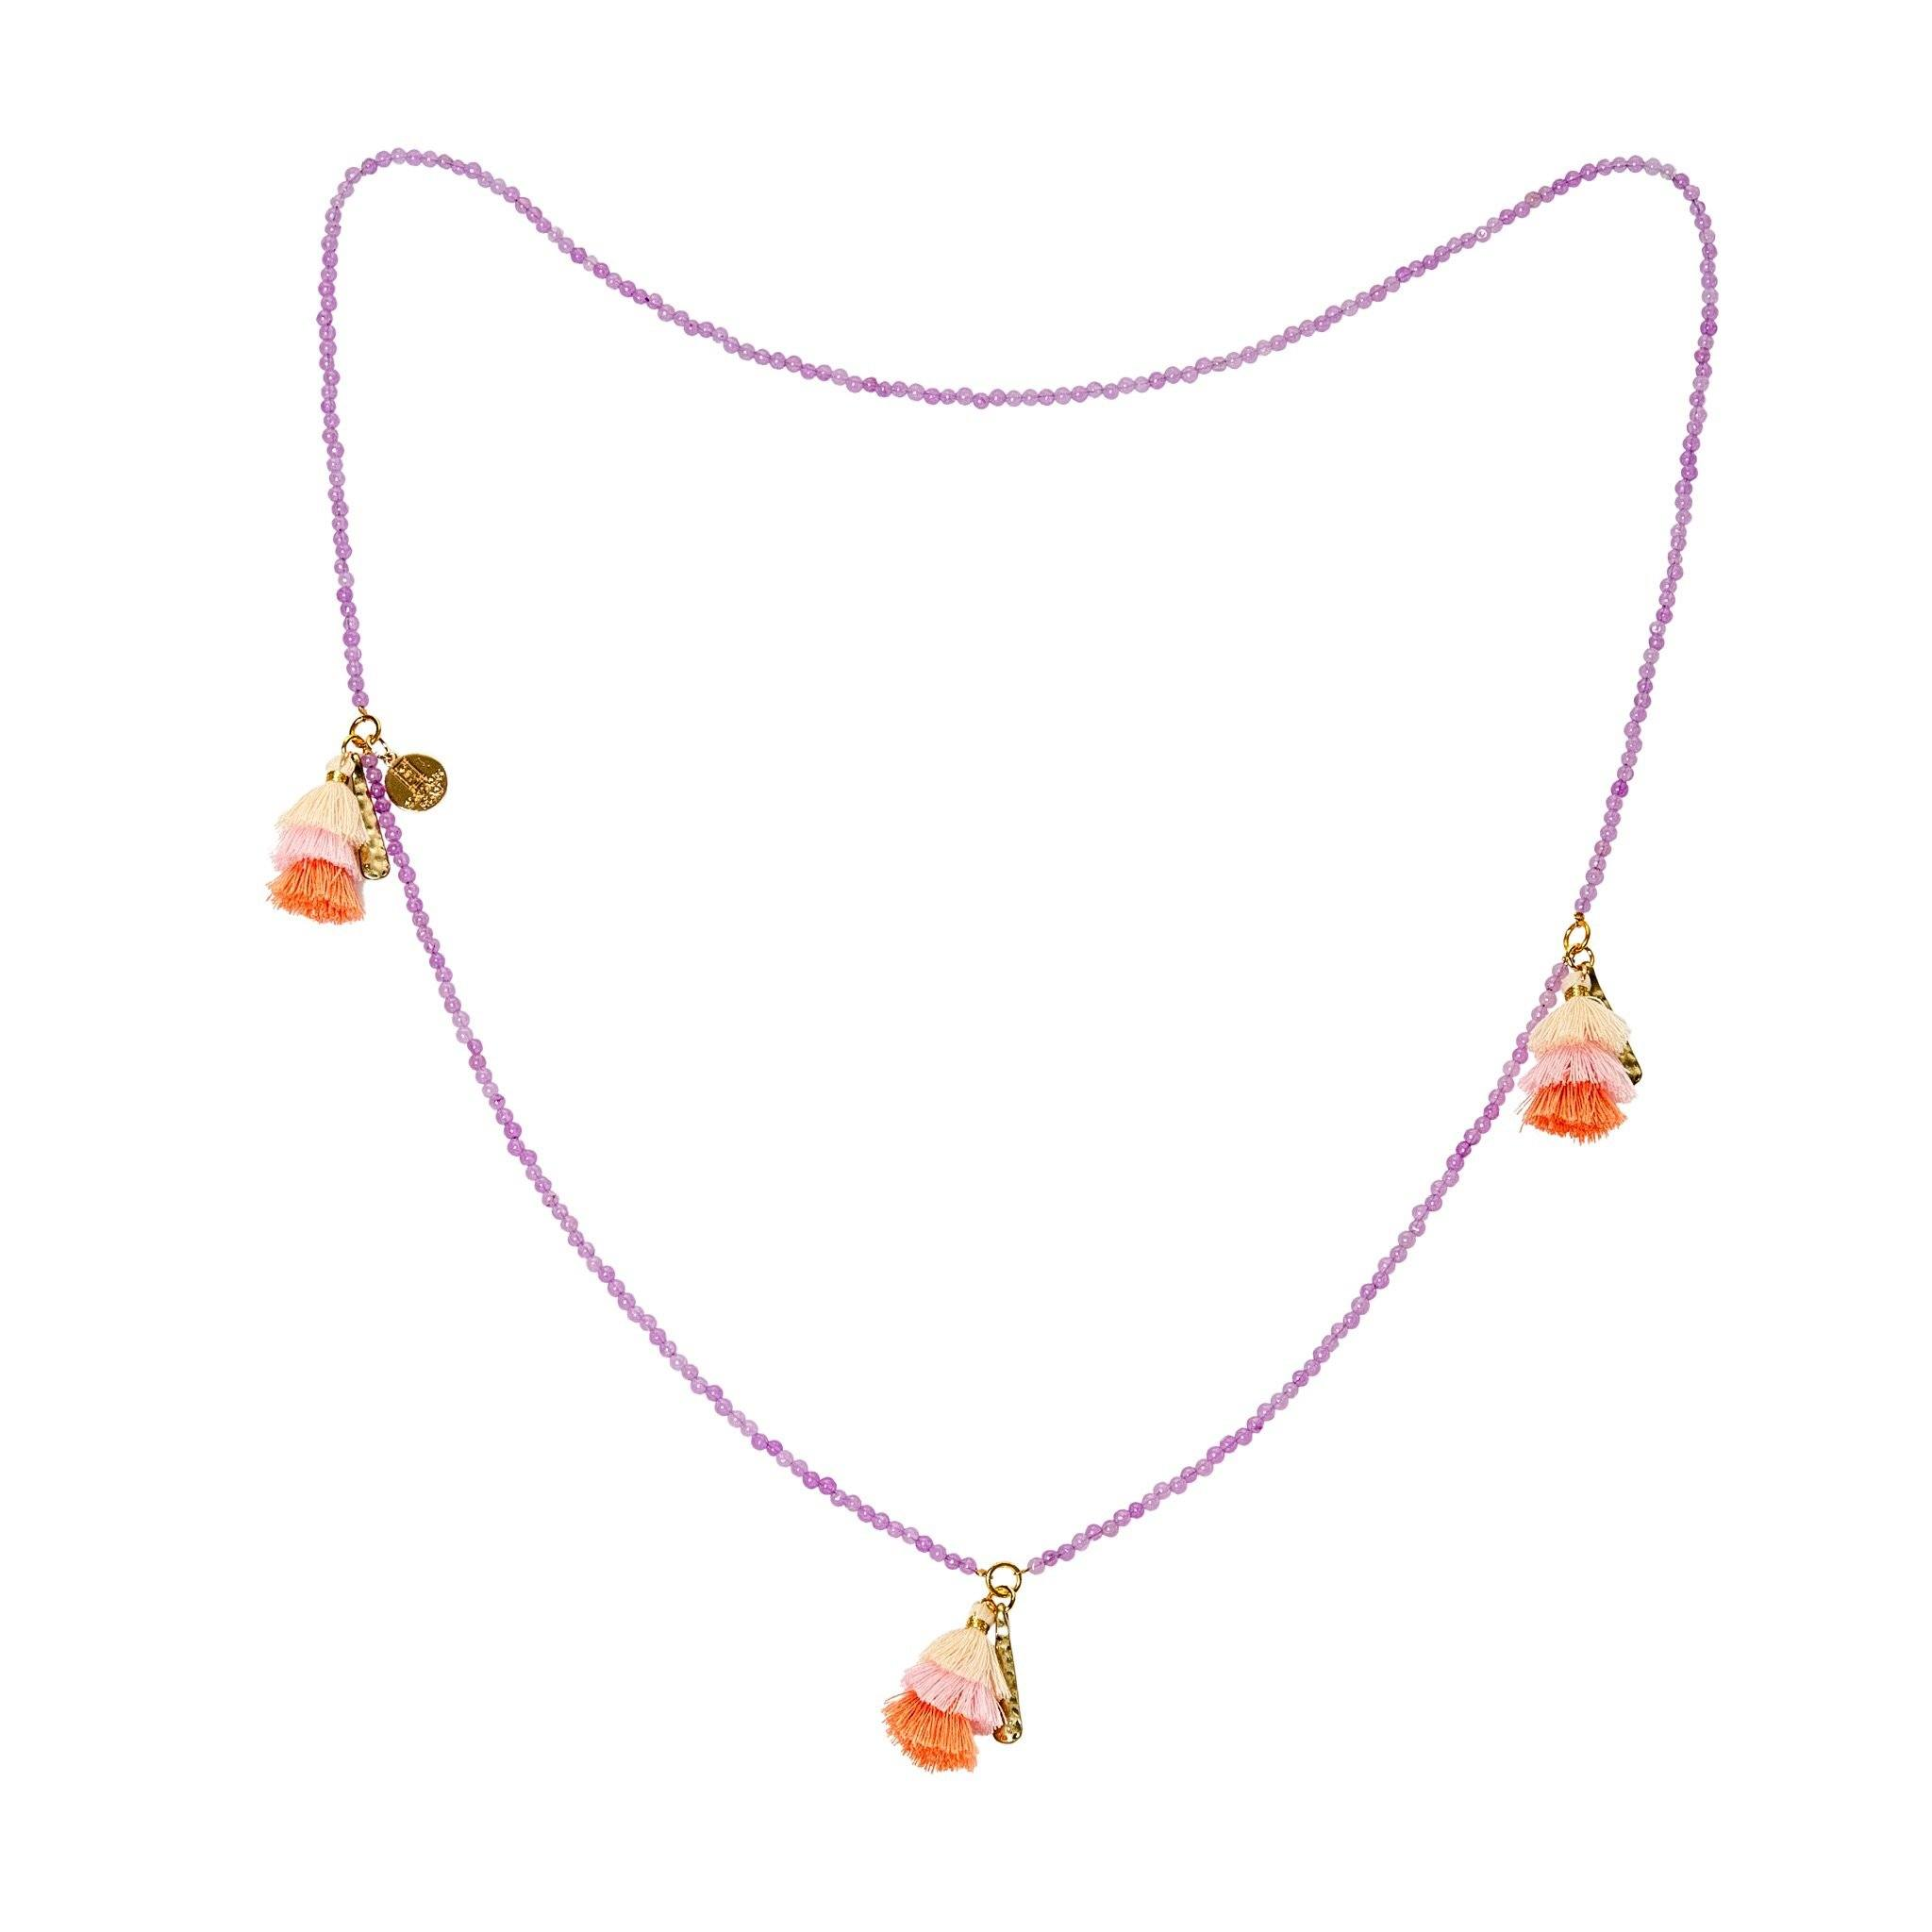 Praka amethyst necklace